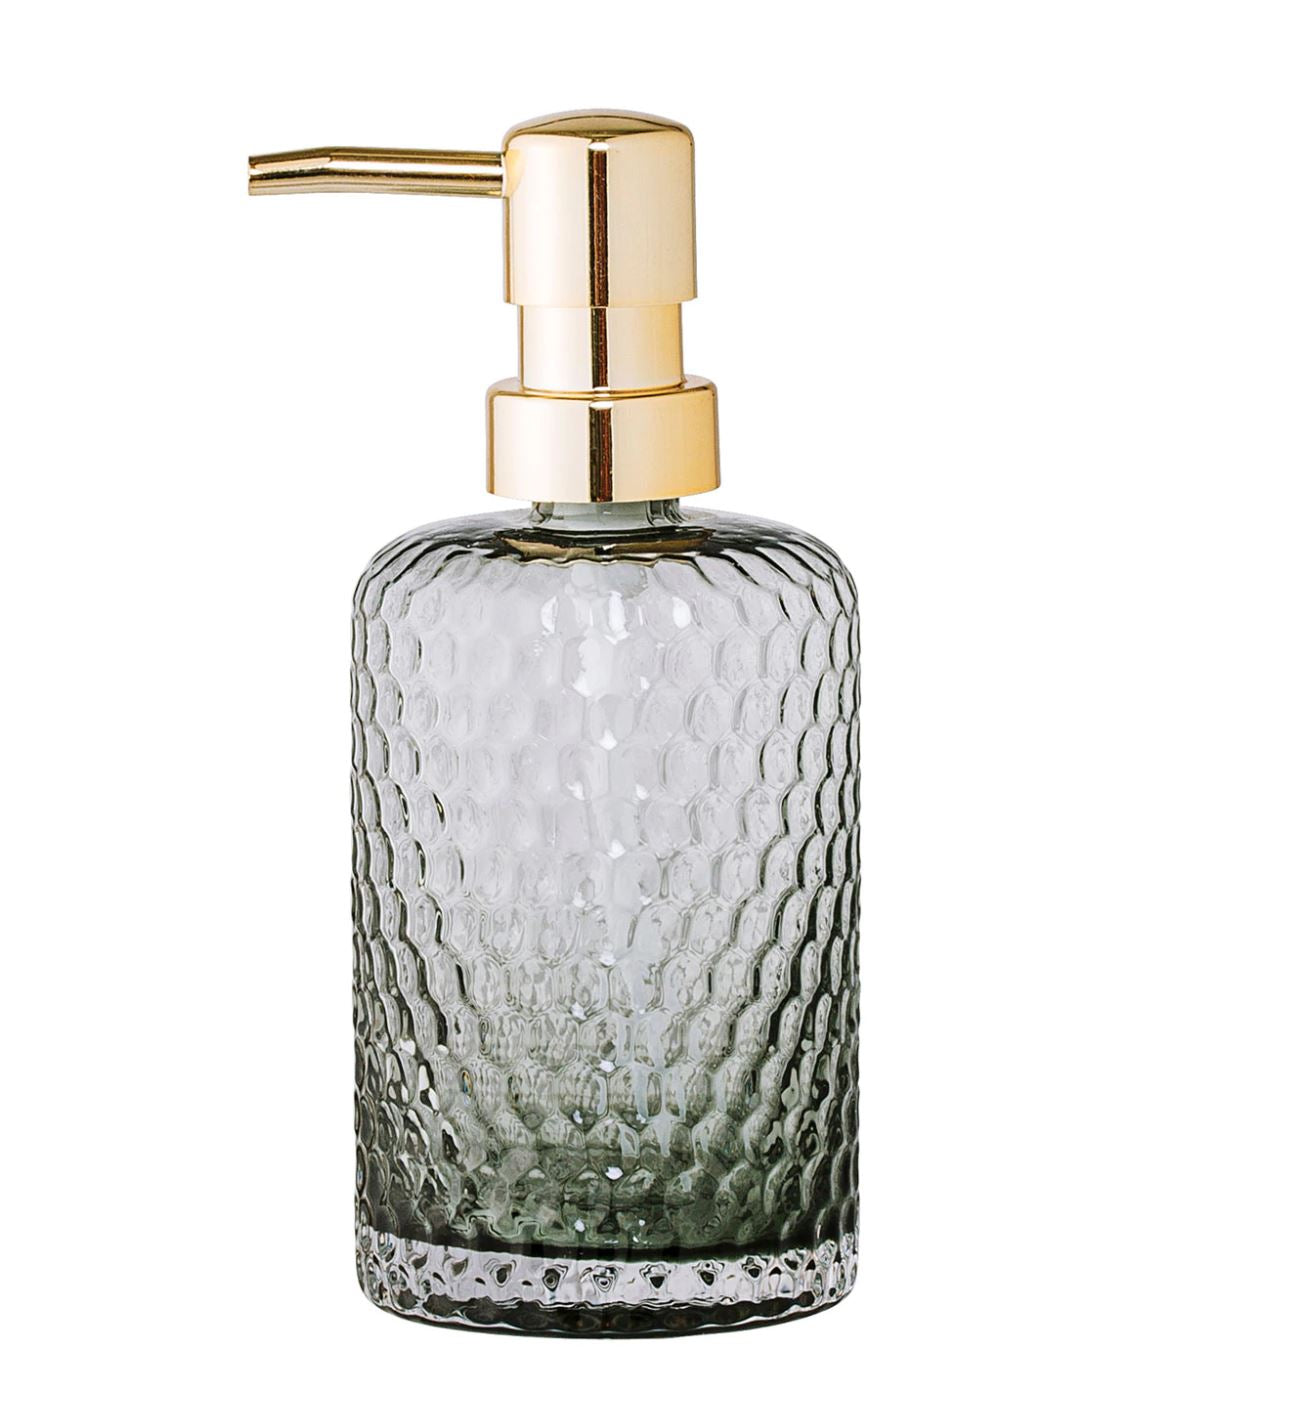 Glass Soap Dispenser Bloomingville Bathroom Accessories